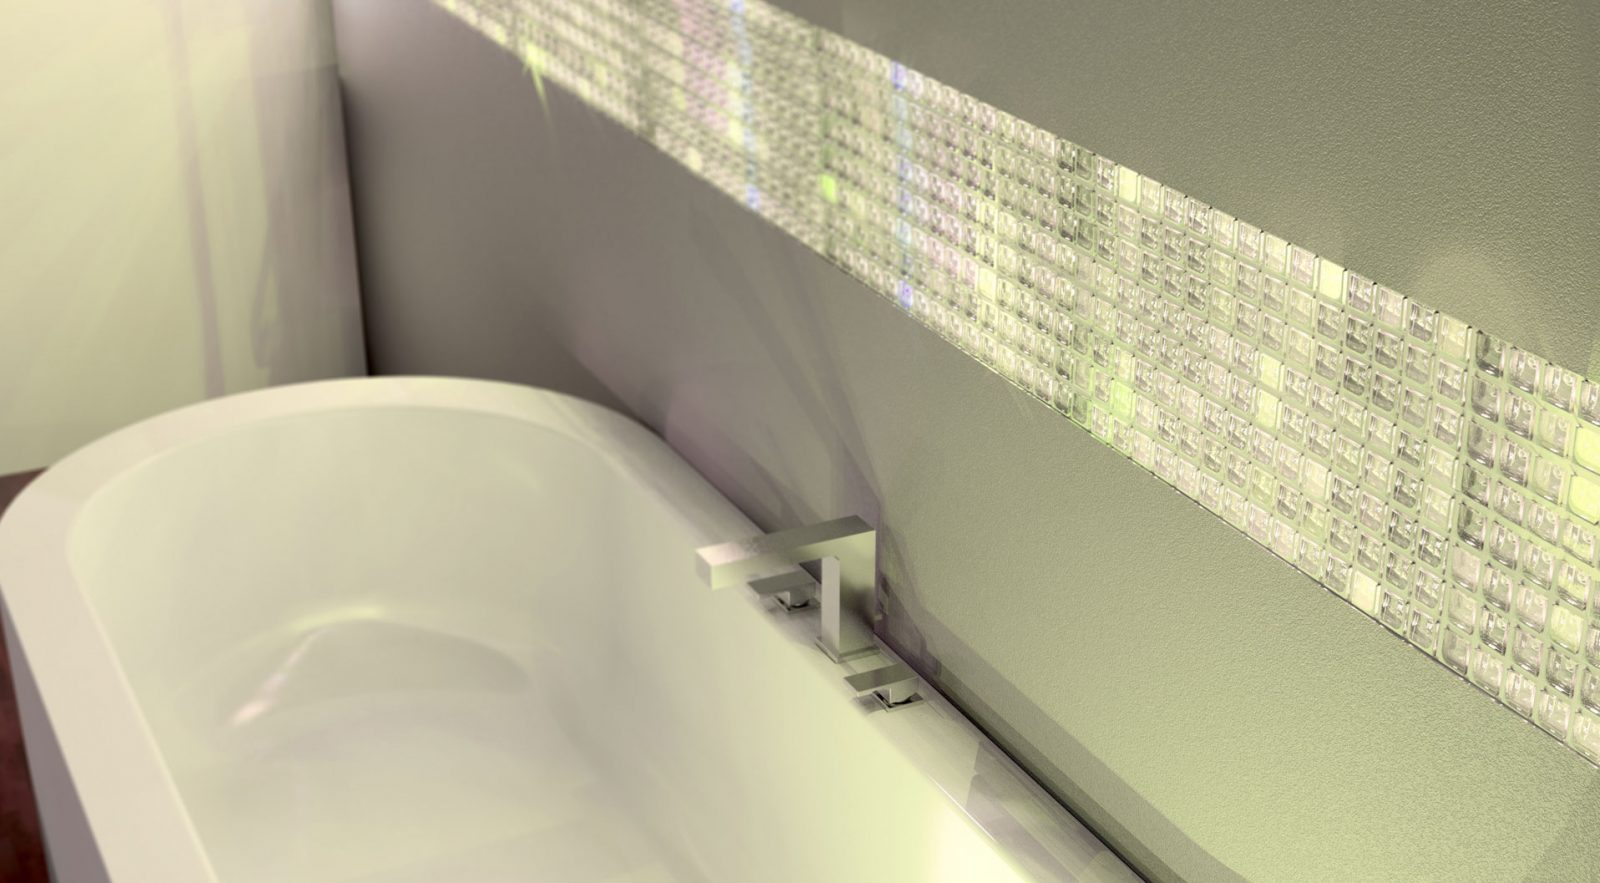 Image showing translucent volatiles installed right above the bath tub